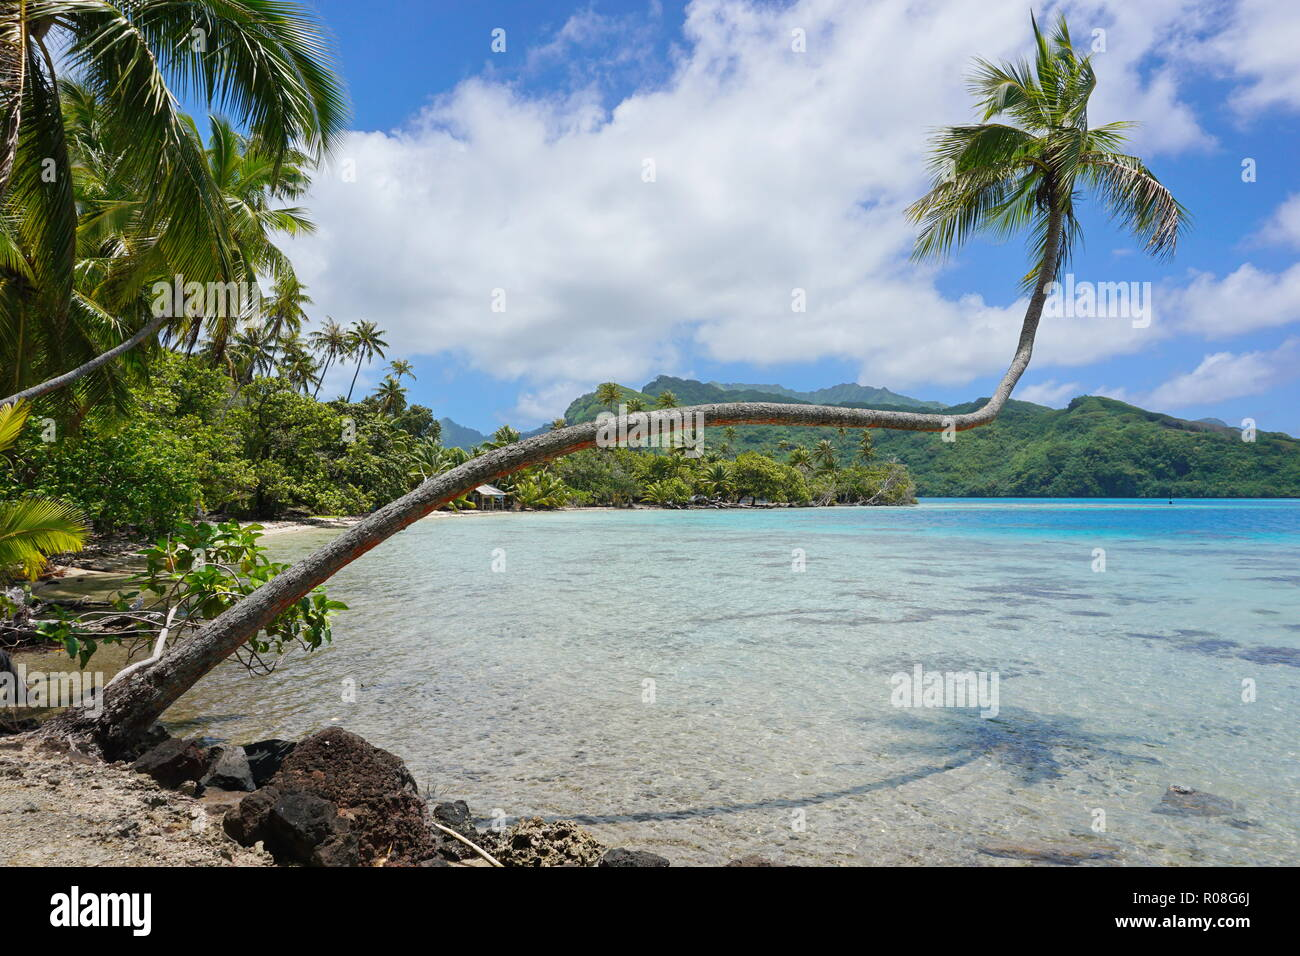 Tropical seascape, a coconut palm tree leans over clear water in French Polynesia, Huahine island, south Pacific ocean - Stock Image